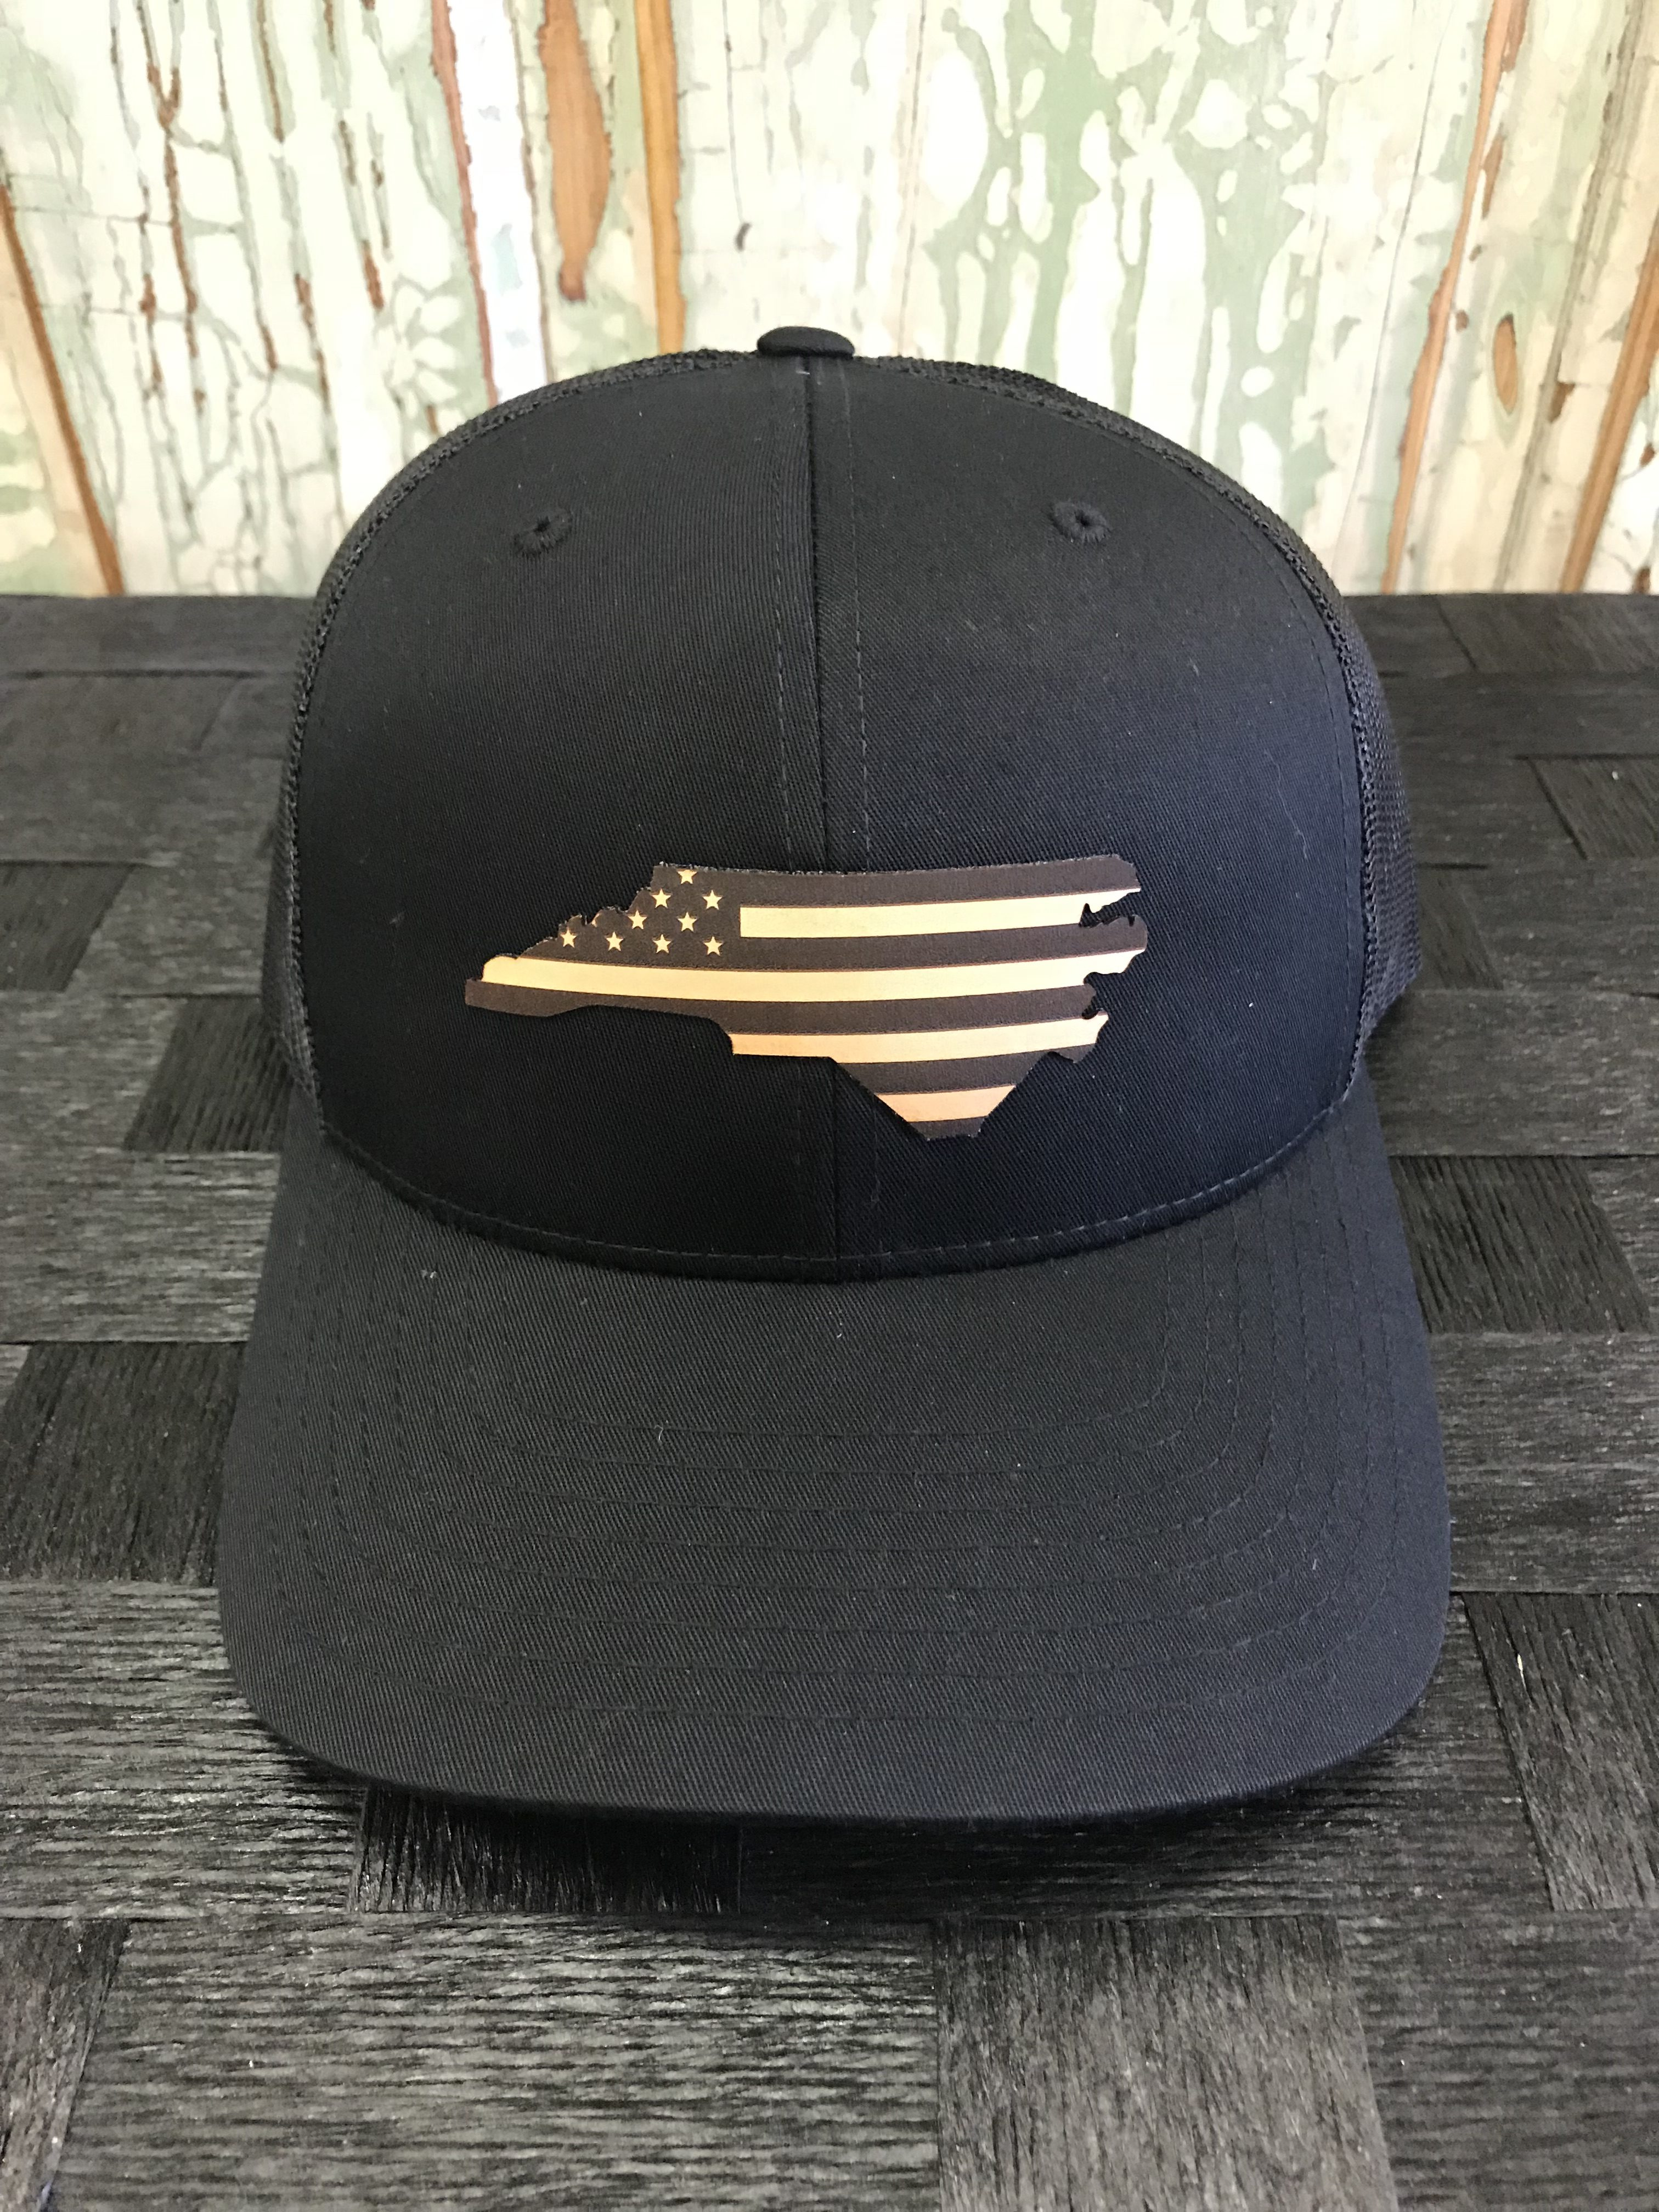 5d8e693ef06 North Carolina USA Flag Leather Patch Snapback Trucker Hat Black Black  Accessories